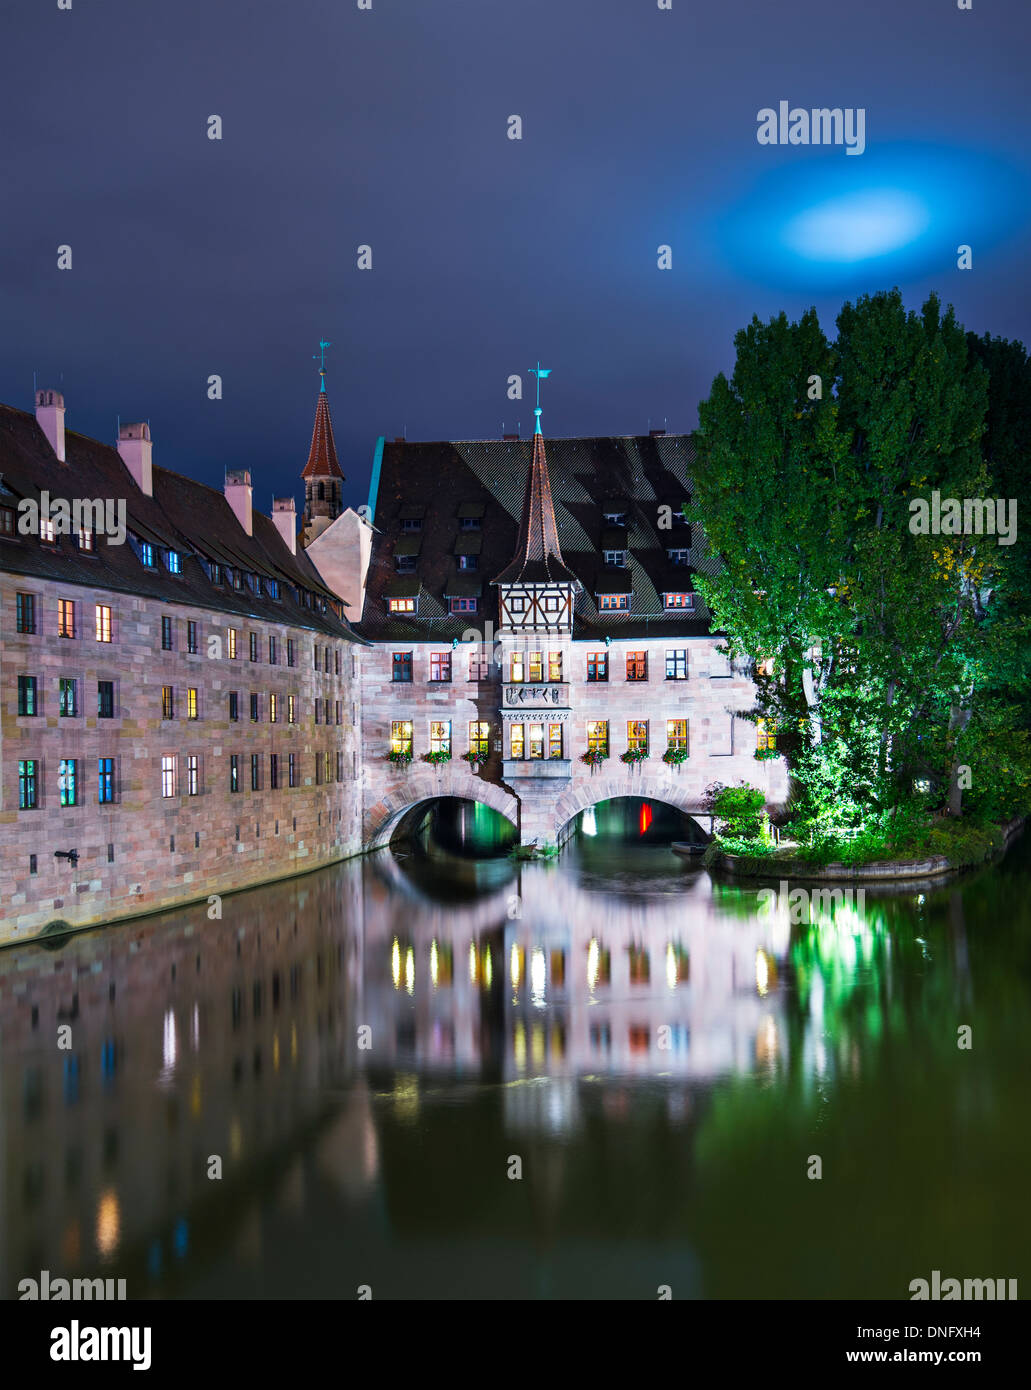 Nuremberg, Germany at the historic Hospital of the Holy Spirit on the Pegnitz River. - Stock Image